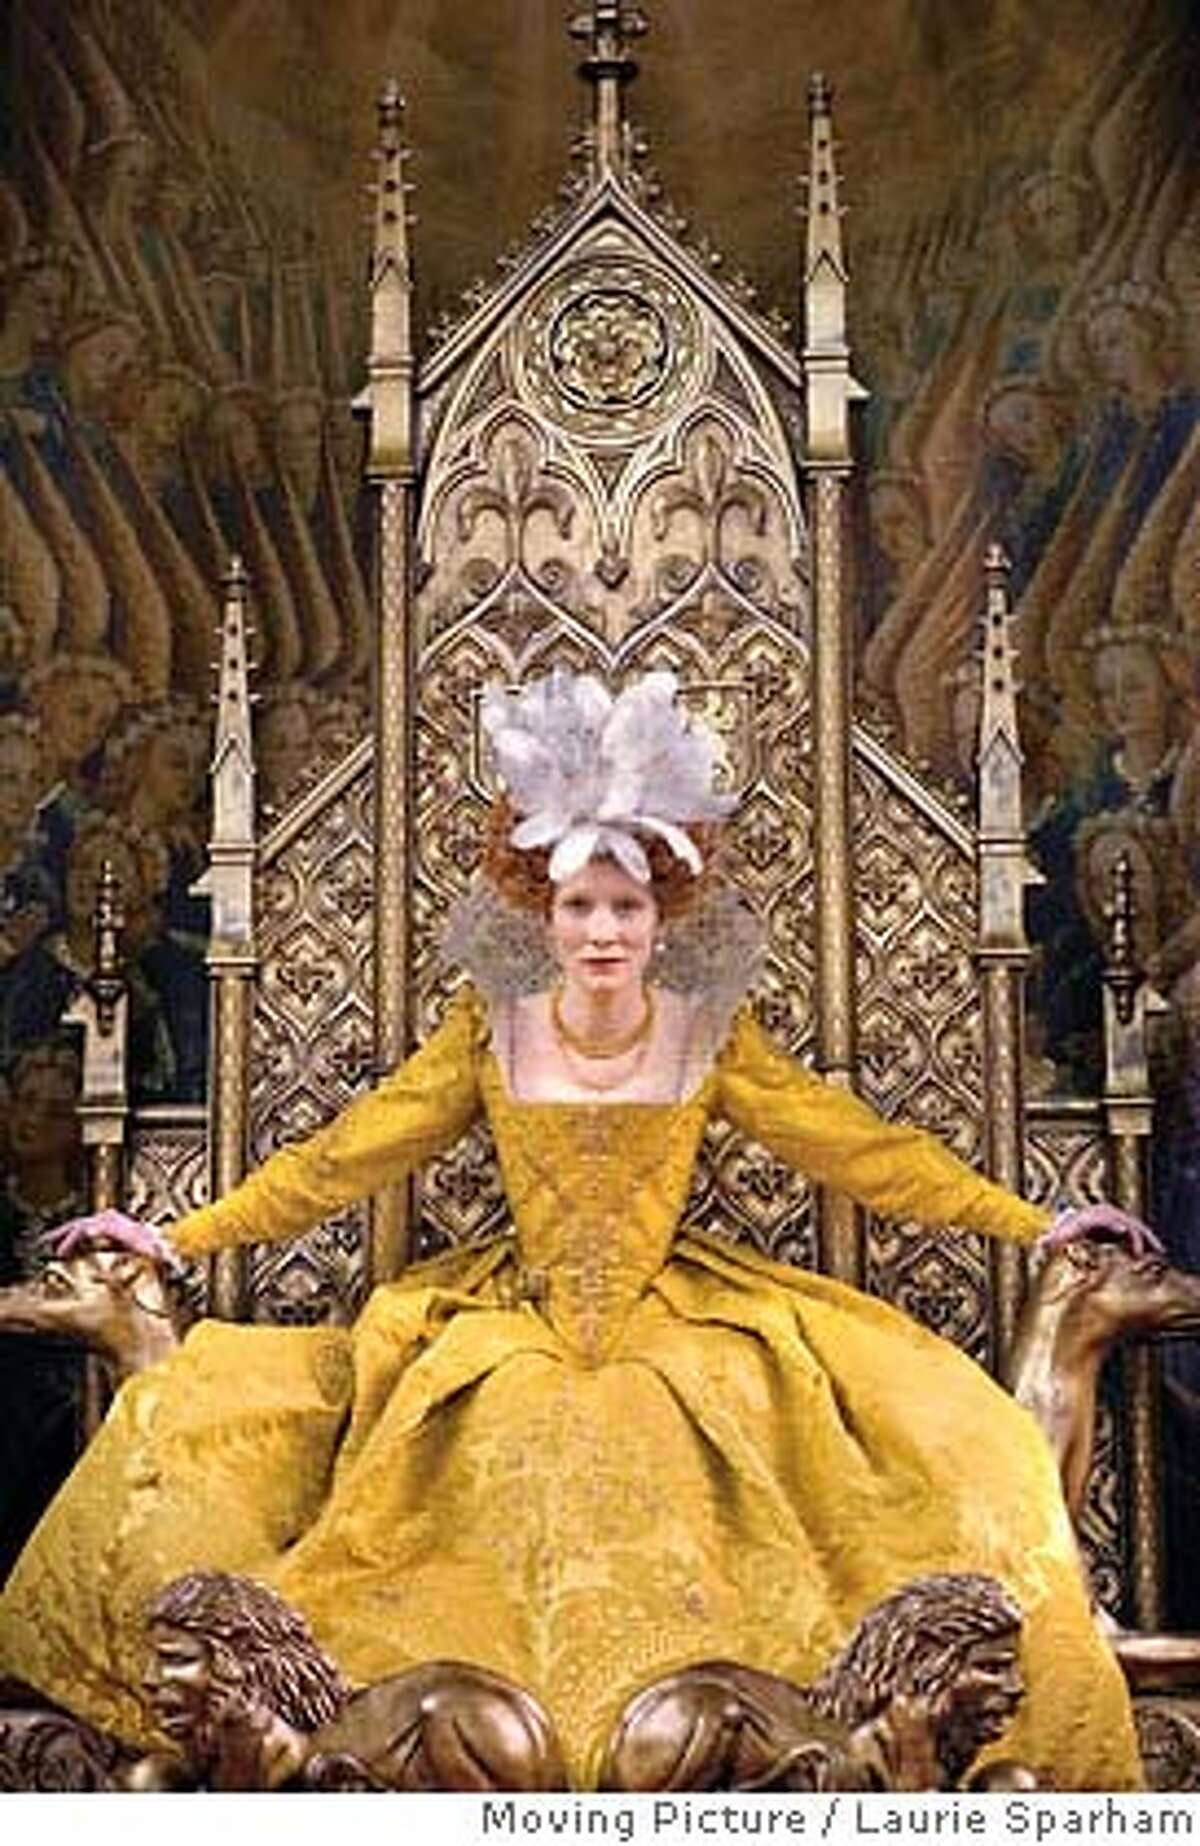 CATE BLANCHETT, reprising the role she originated in the seven-time Academy Award�-nominated ?Elizabeth?, holds court in a gripping historical thriller laced with treachery and romance--?Elizabeth: The Golden Age?.